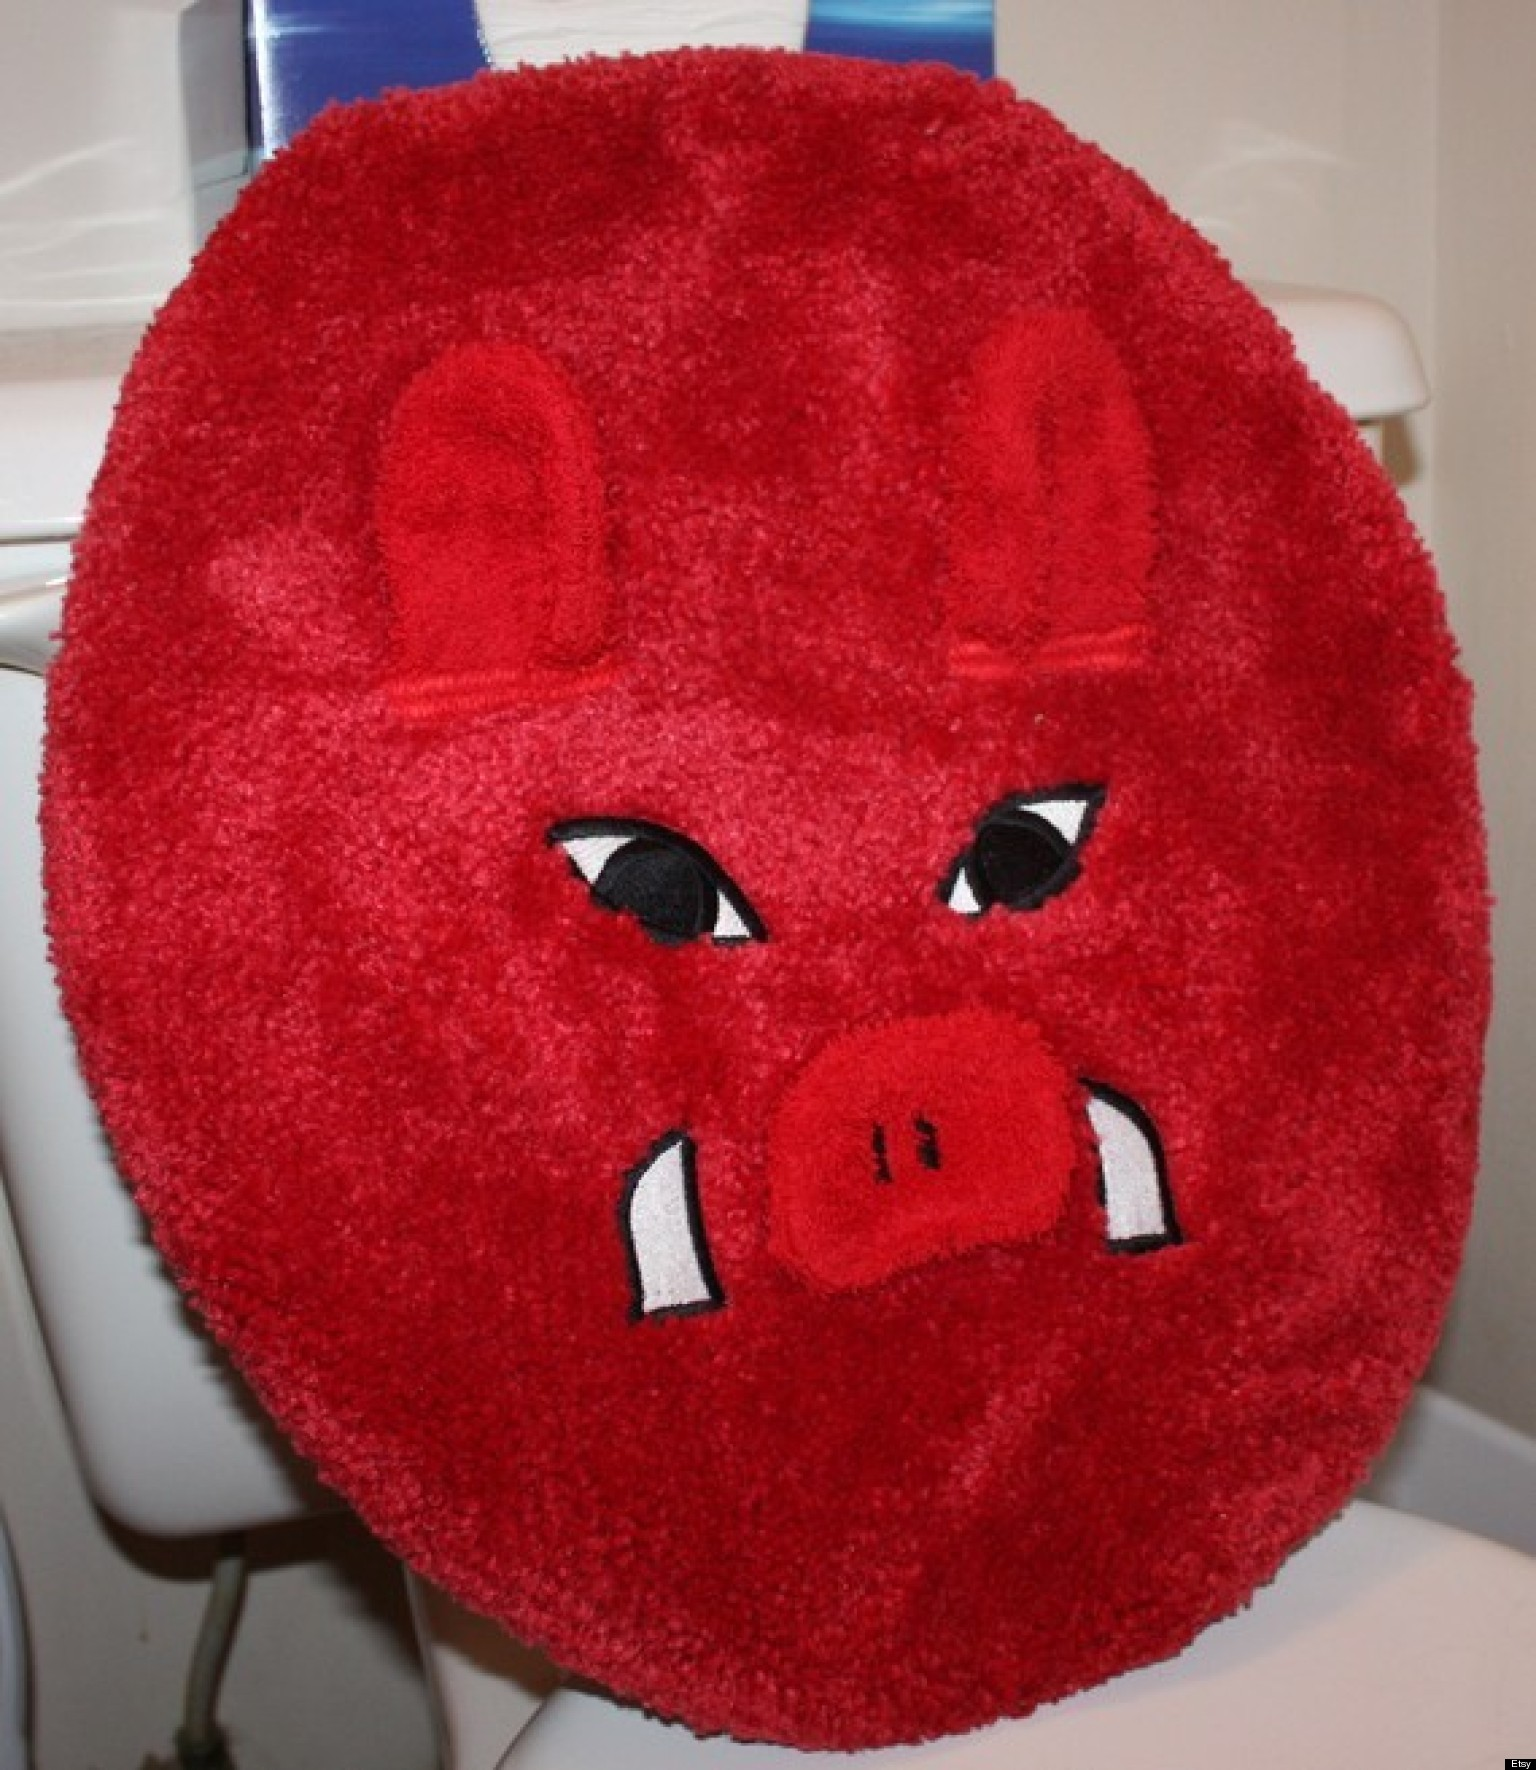 25 Ridiculous Toilet Seat Covers (PHOTOS)